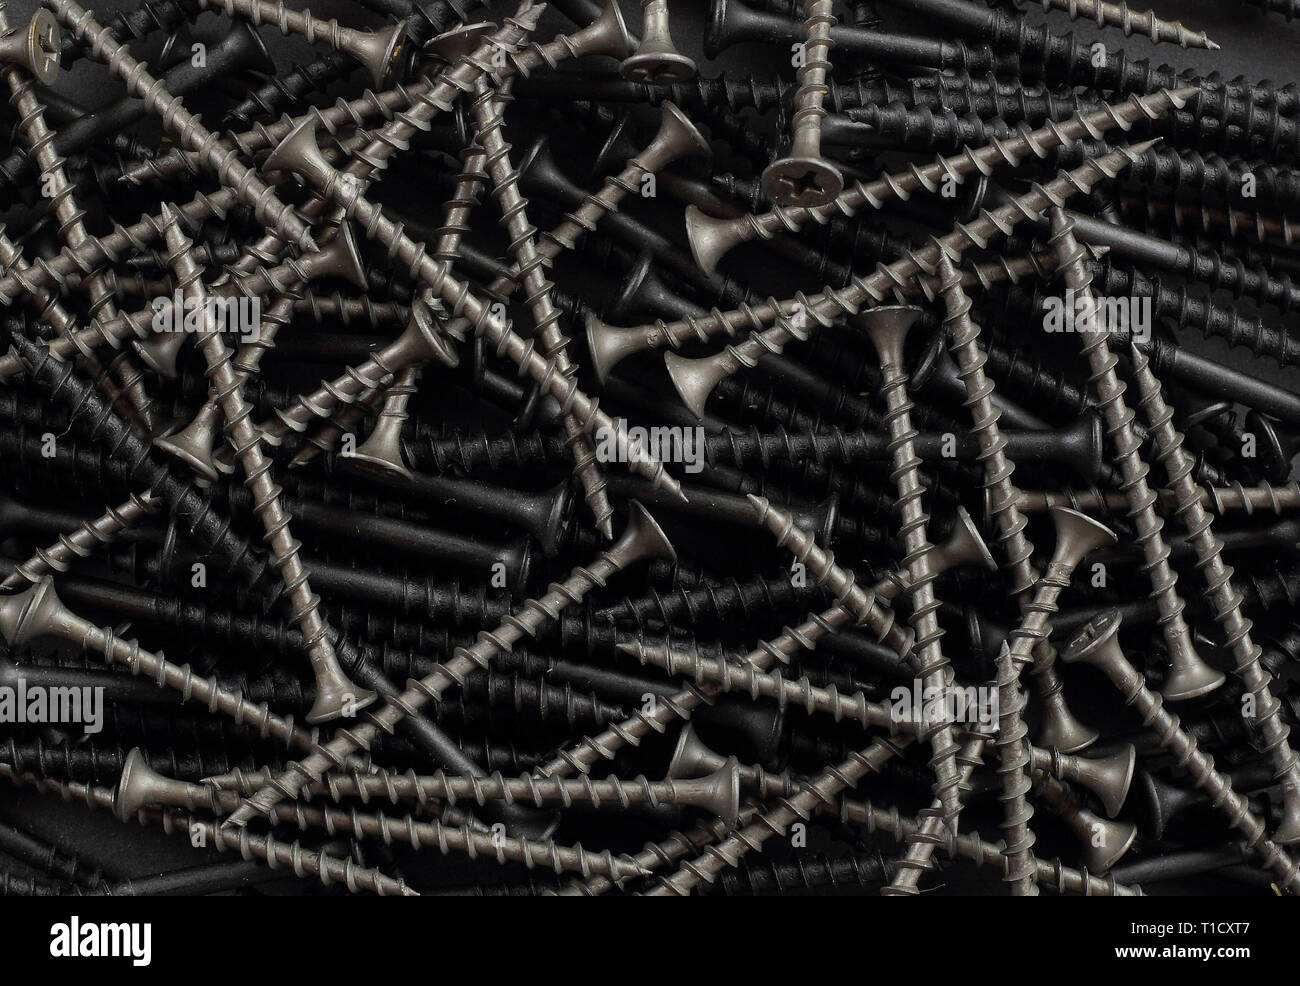 Construction, repair, tools - Abstract Self-tapping screw background - Stock Image